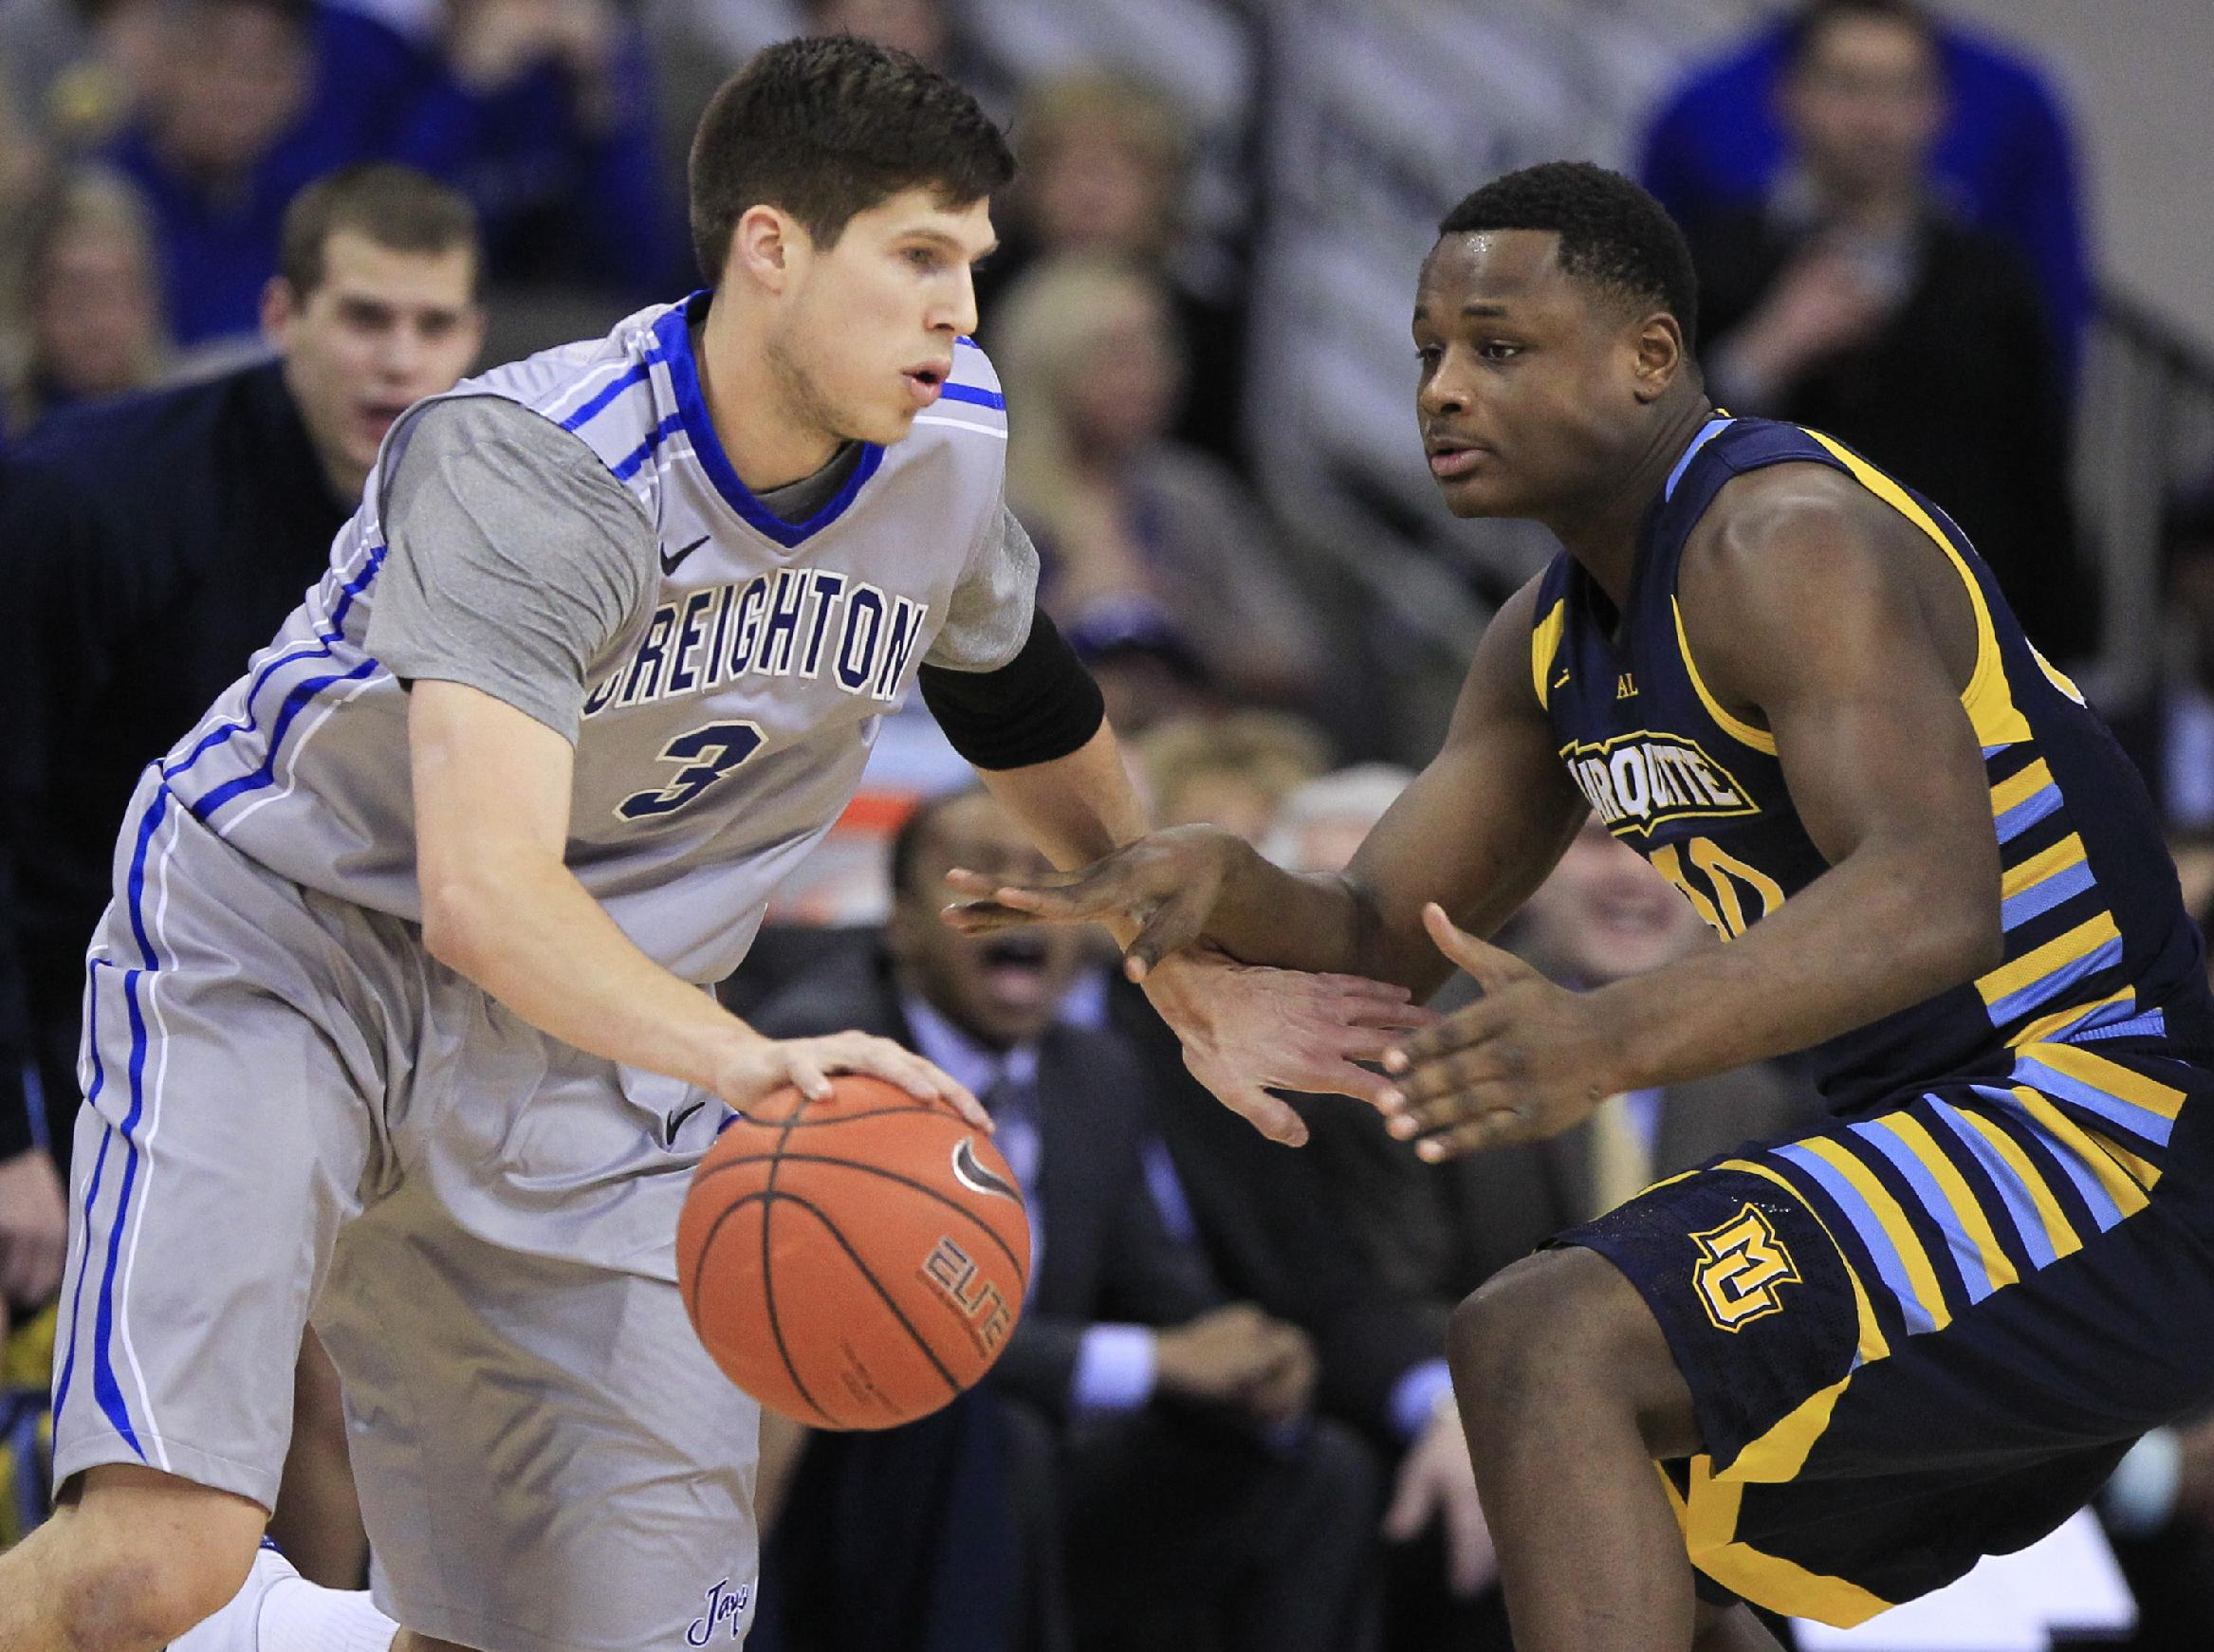 Creighton wins 67-49 in inaugural Big East game